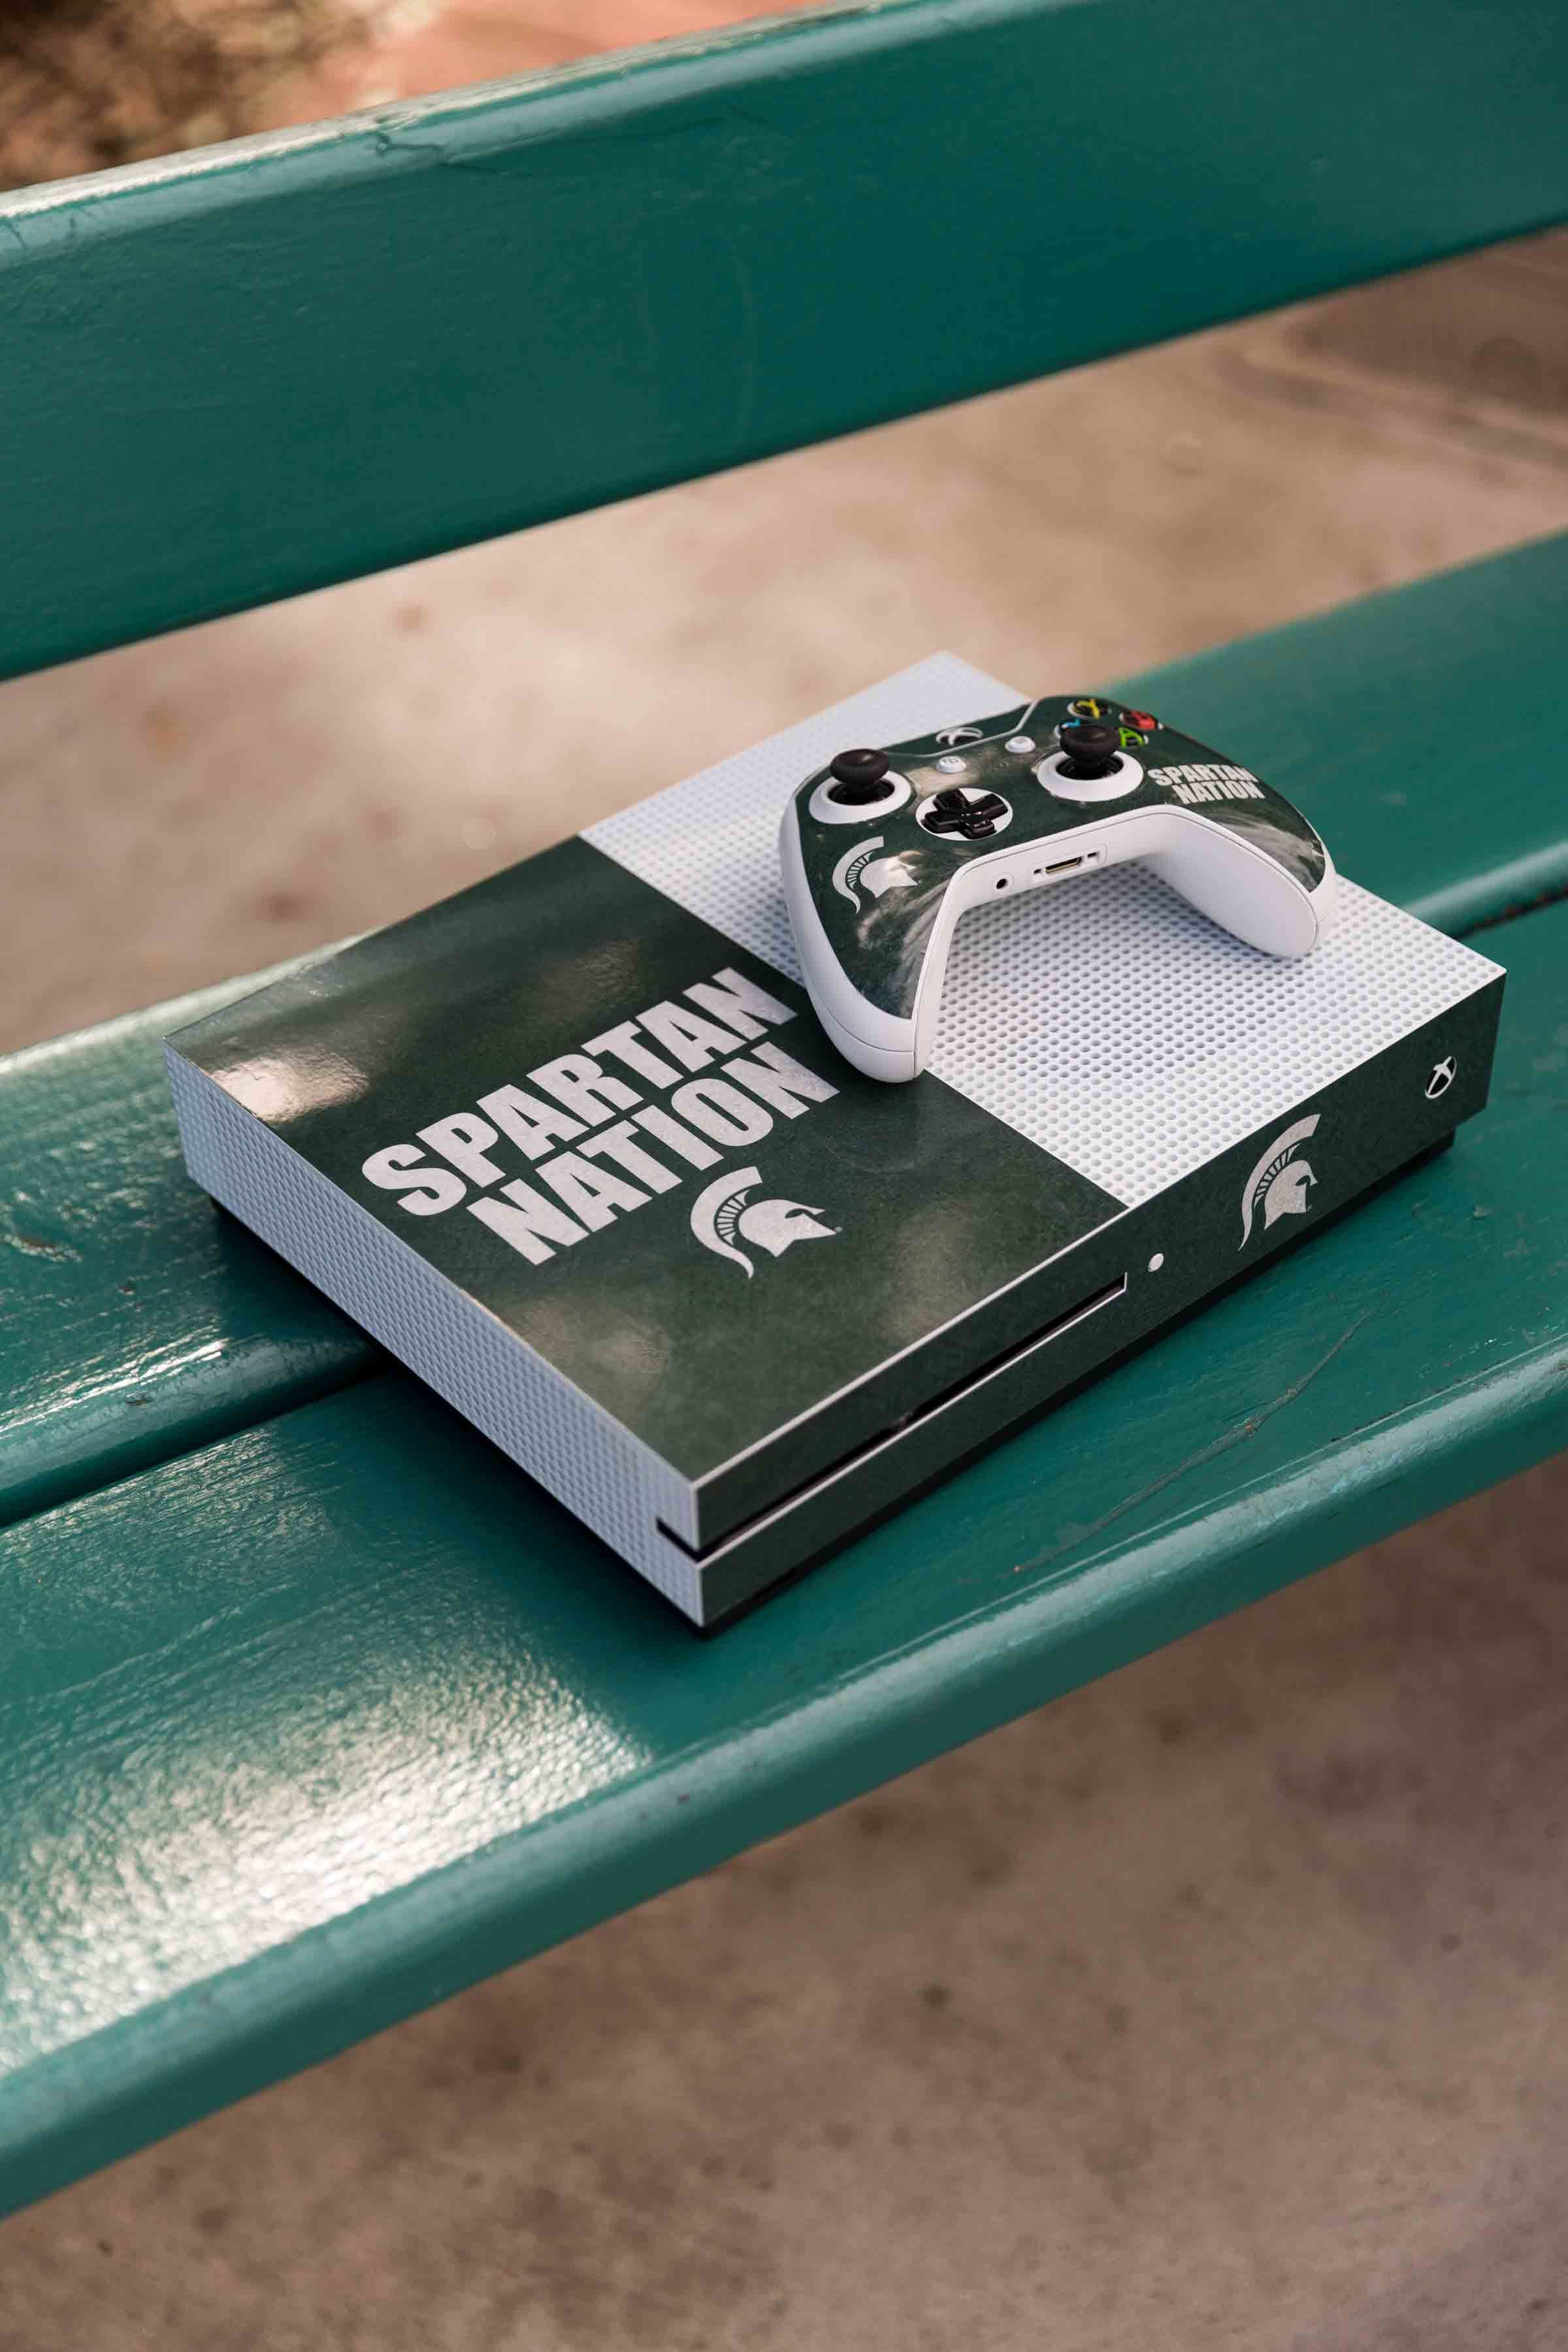 Michigan State Spartan Nation Xbox One S Bundle Skin By Skinit Explore Official Collegiate Designs For Your Xbox One S At Skin Xbox One S Xbox One Custom Xbox